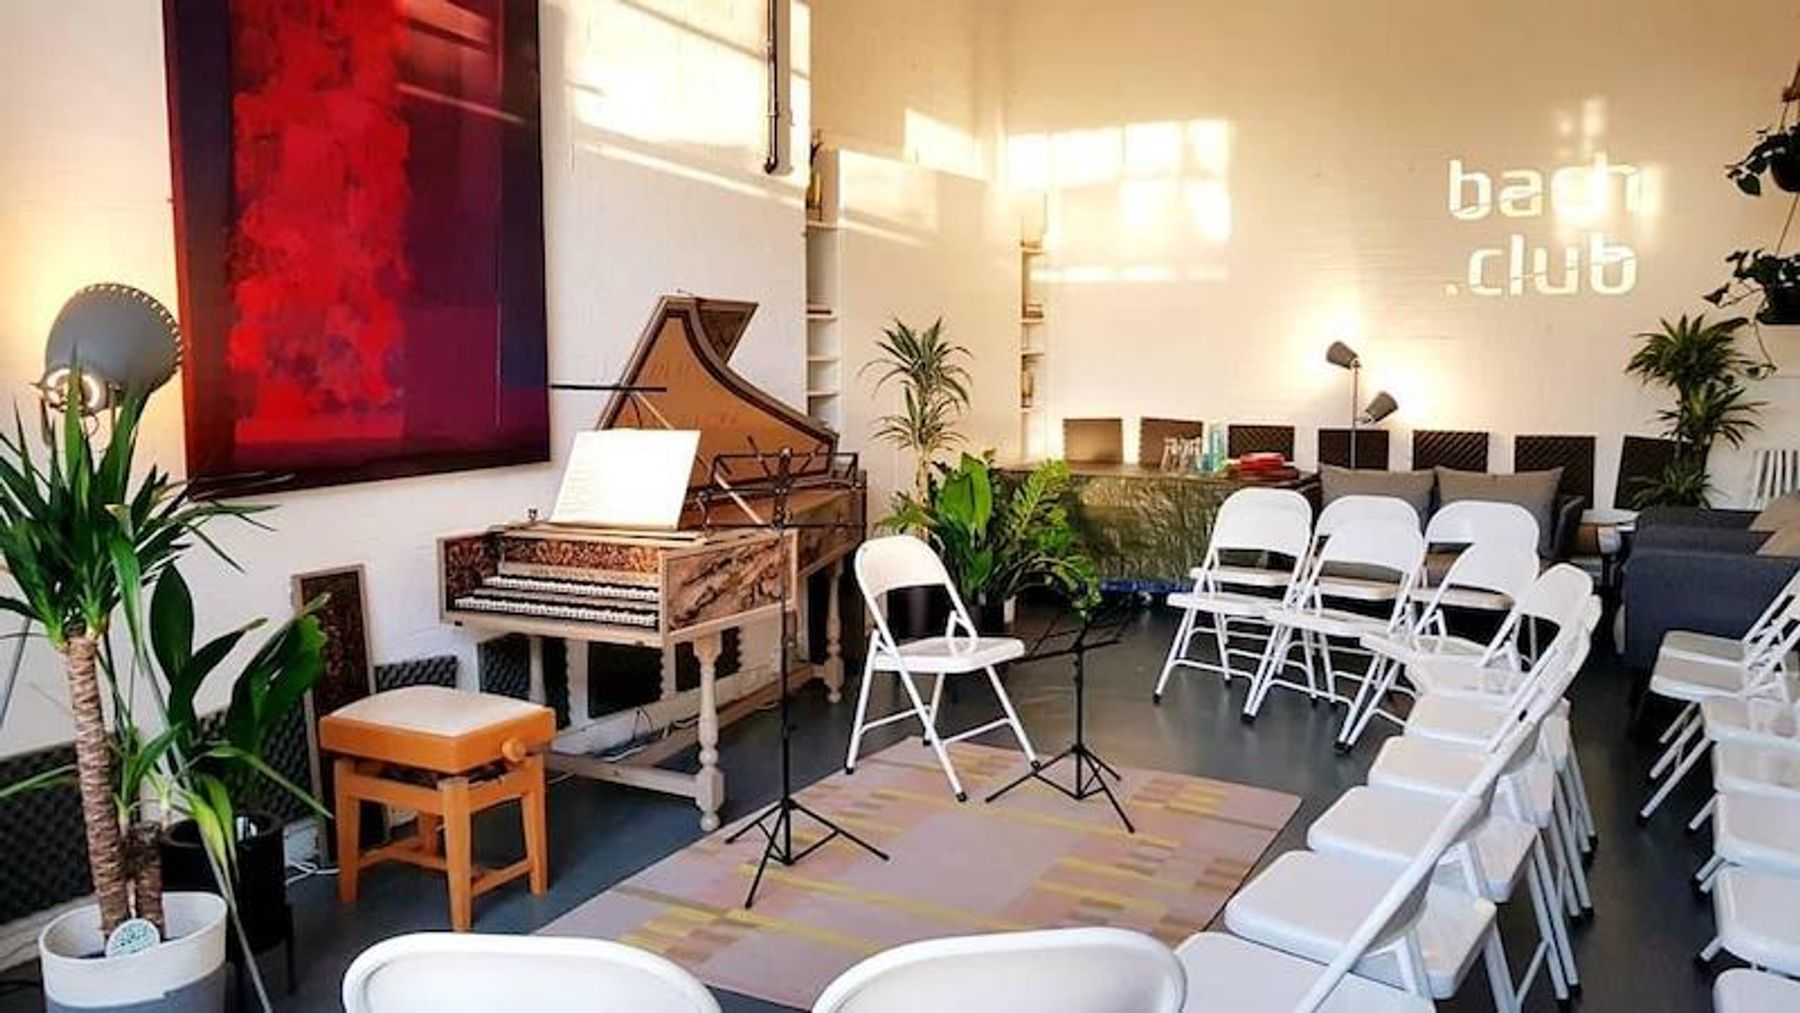 Bach Club | Studio with harpsichord & fortepiano